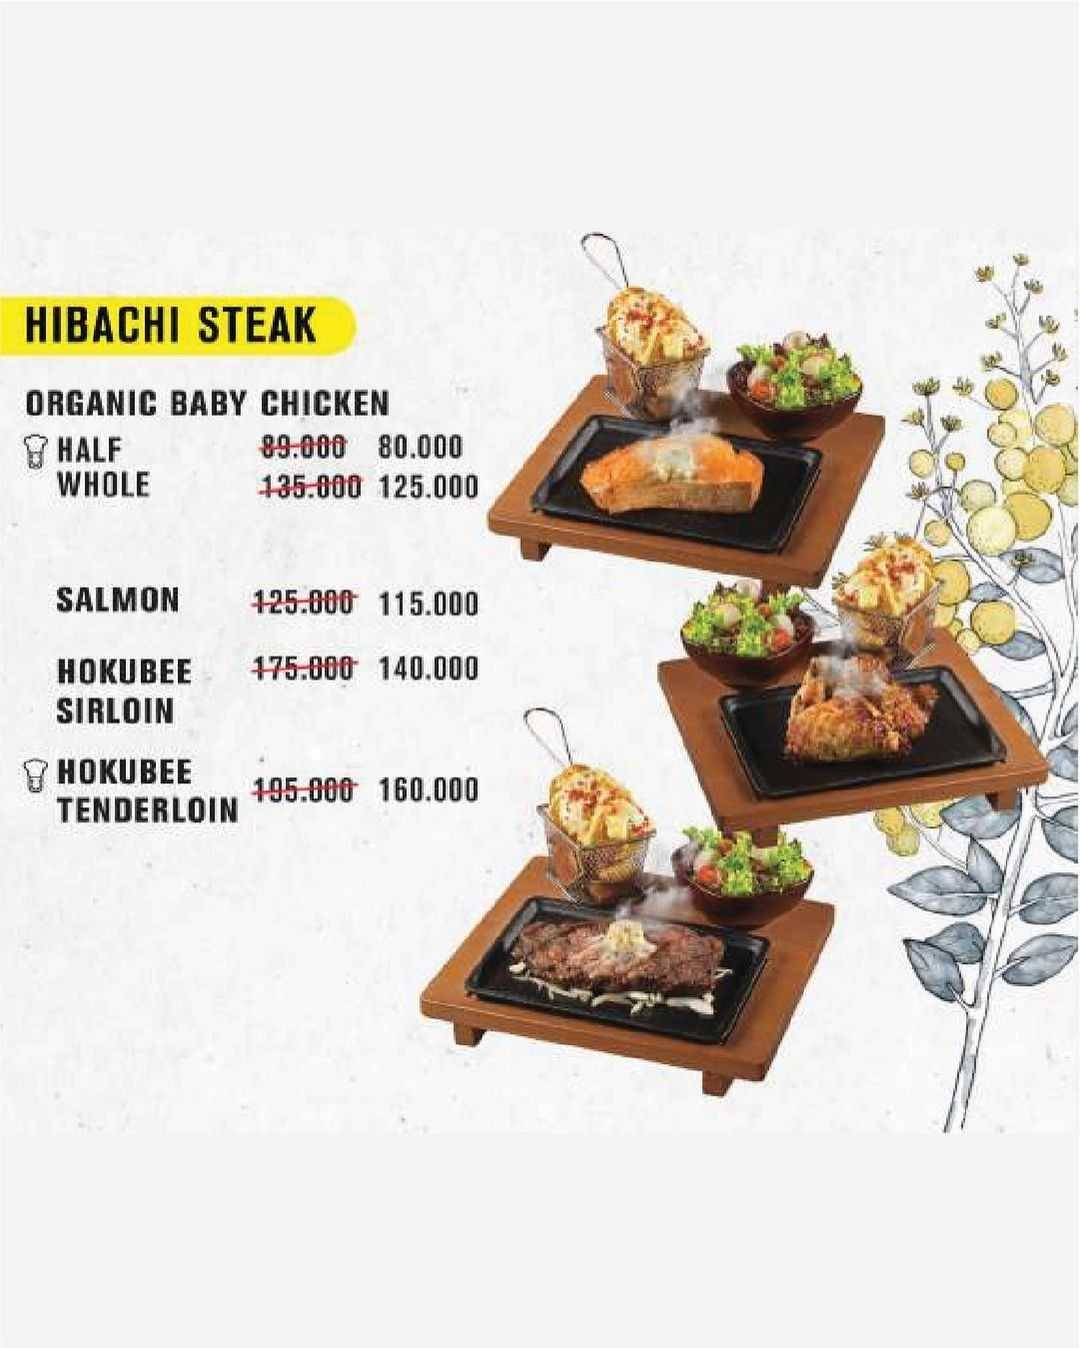 Promo diskon Beatrice Quarters Home Delivery Service Discount Up To 50% Off